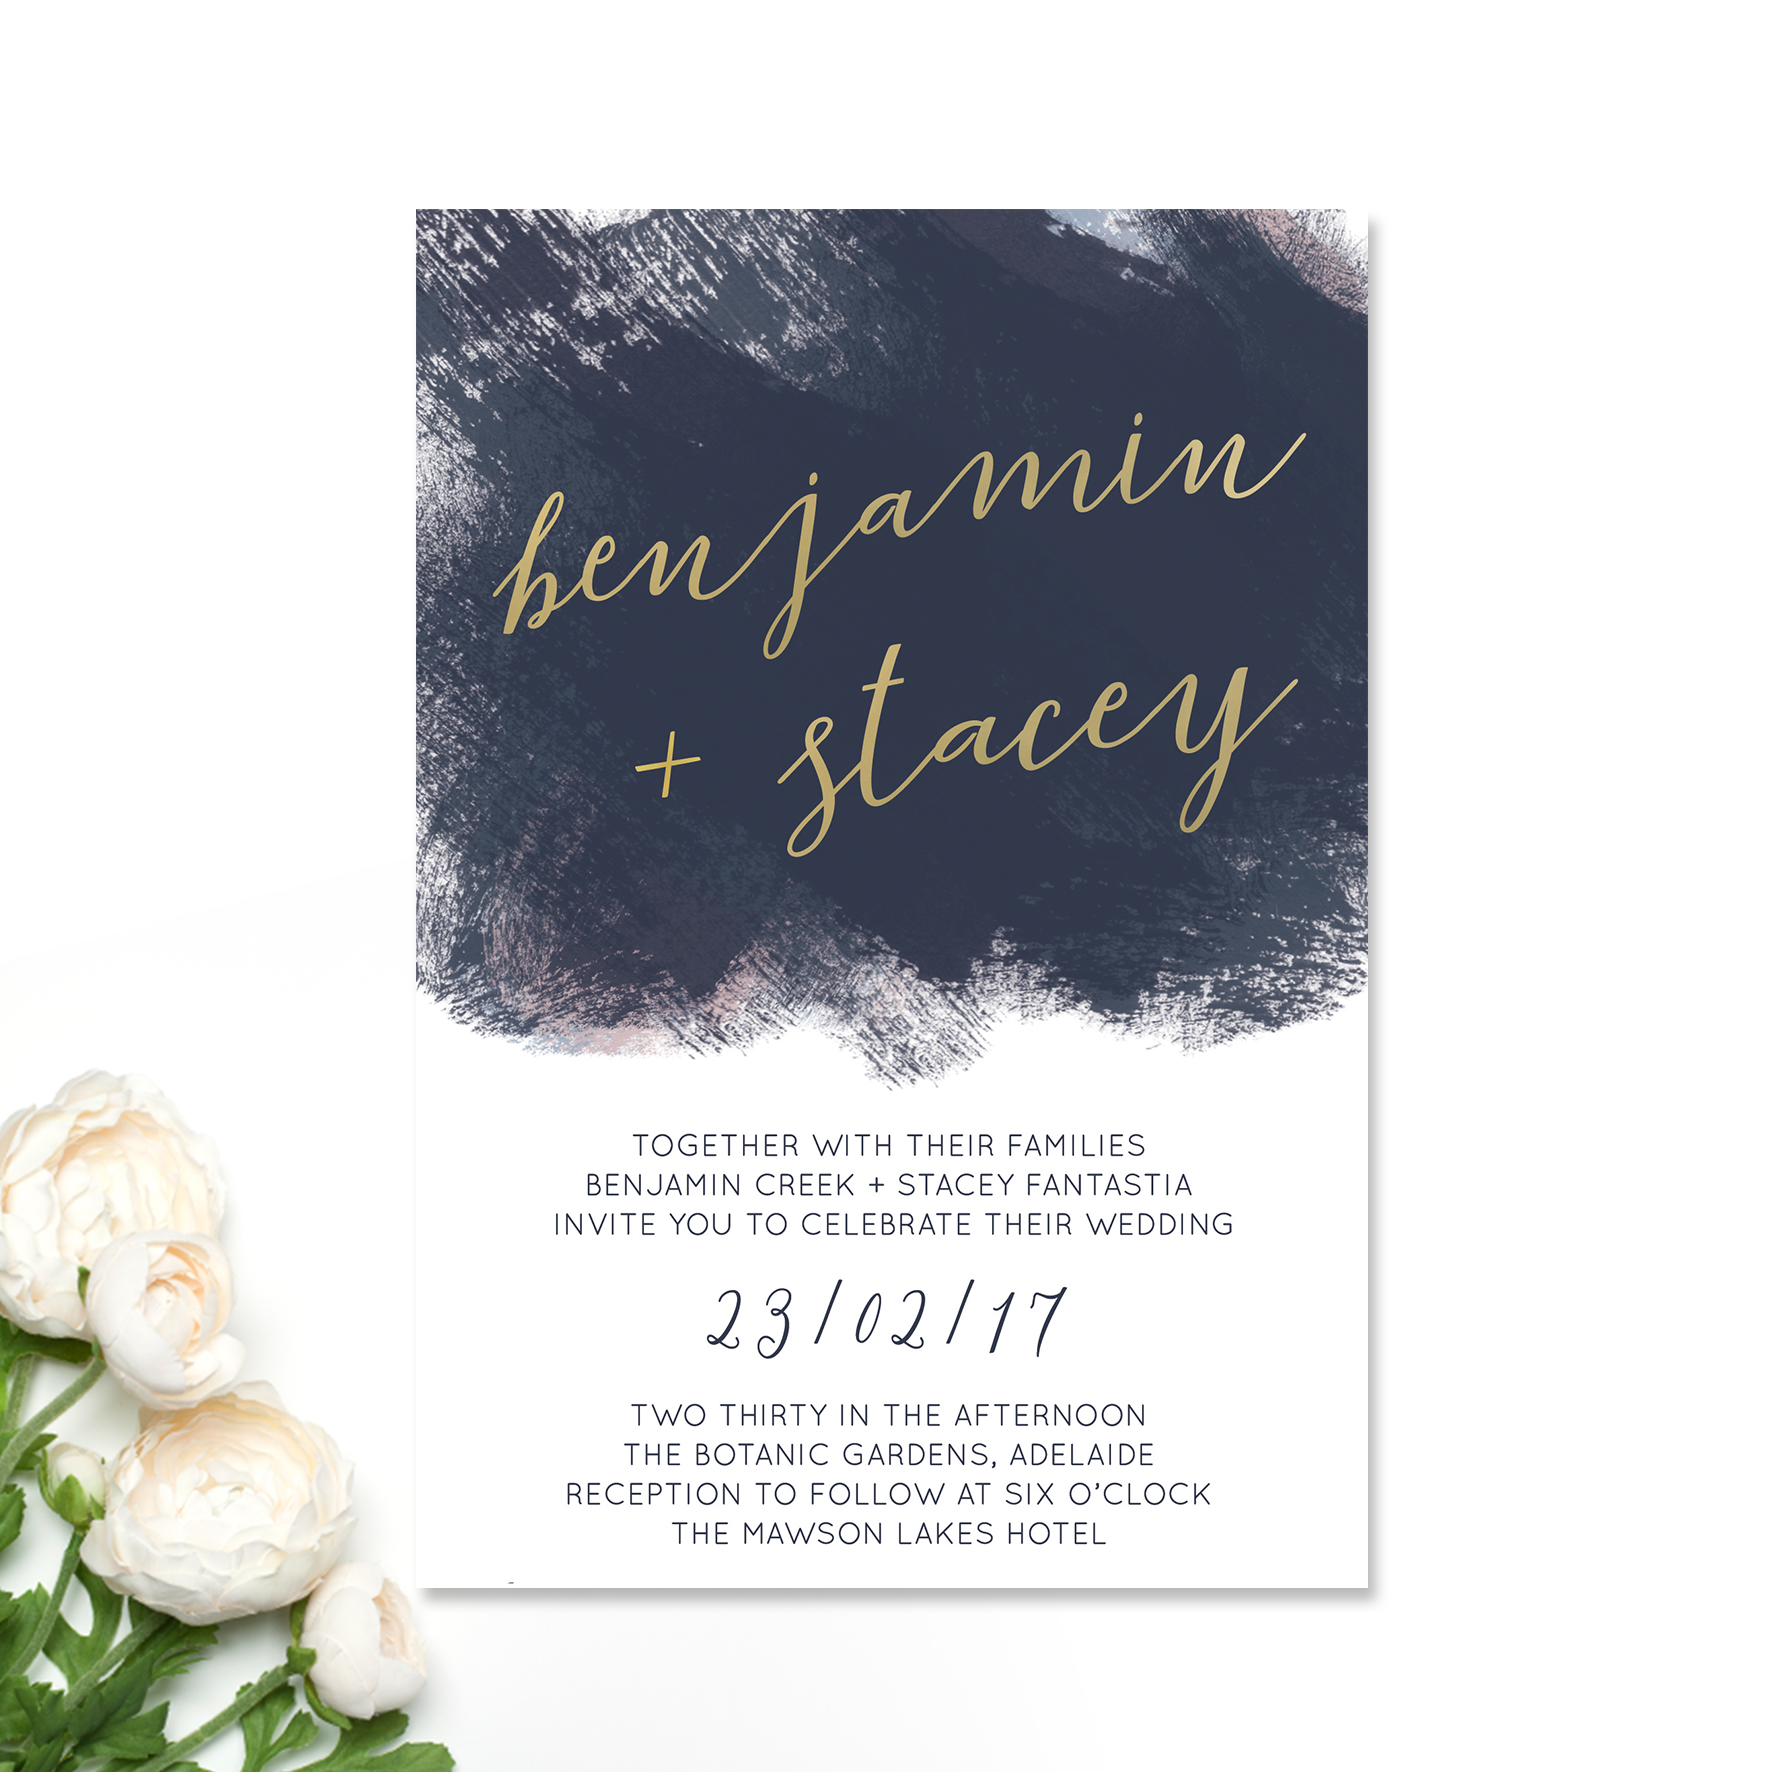 Navy + Blush Splash Wedding Invitation